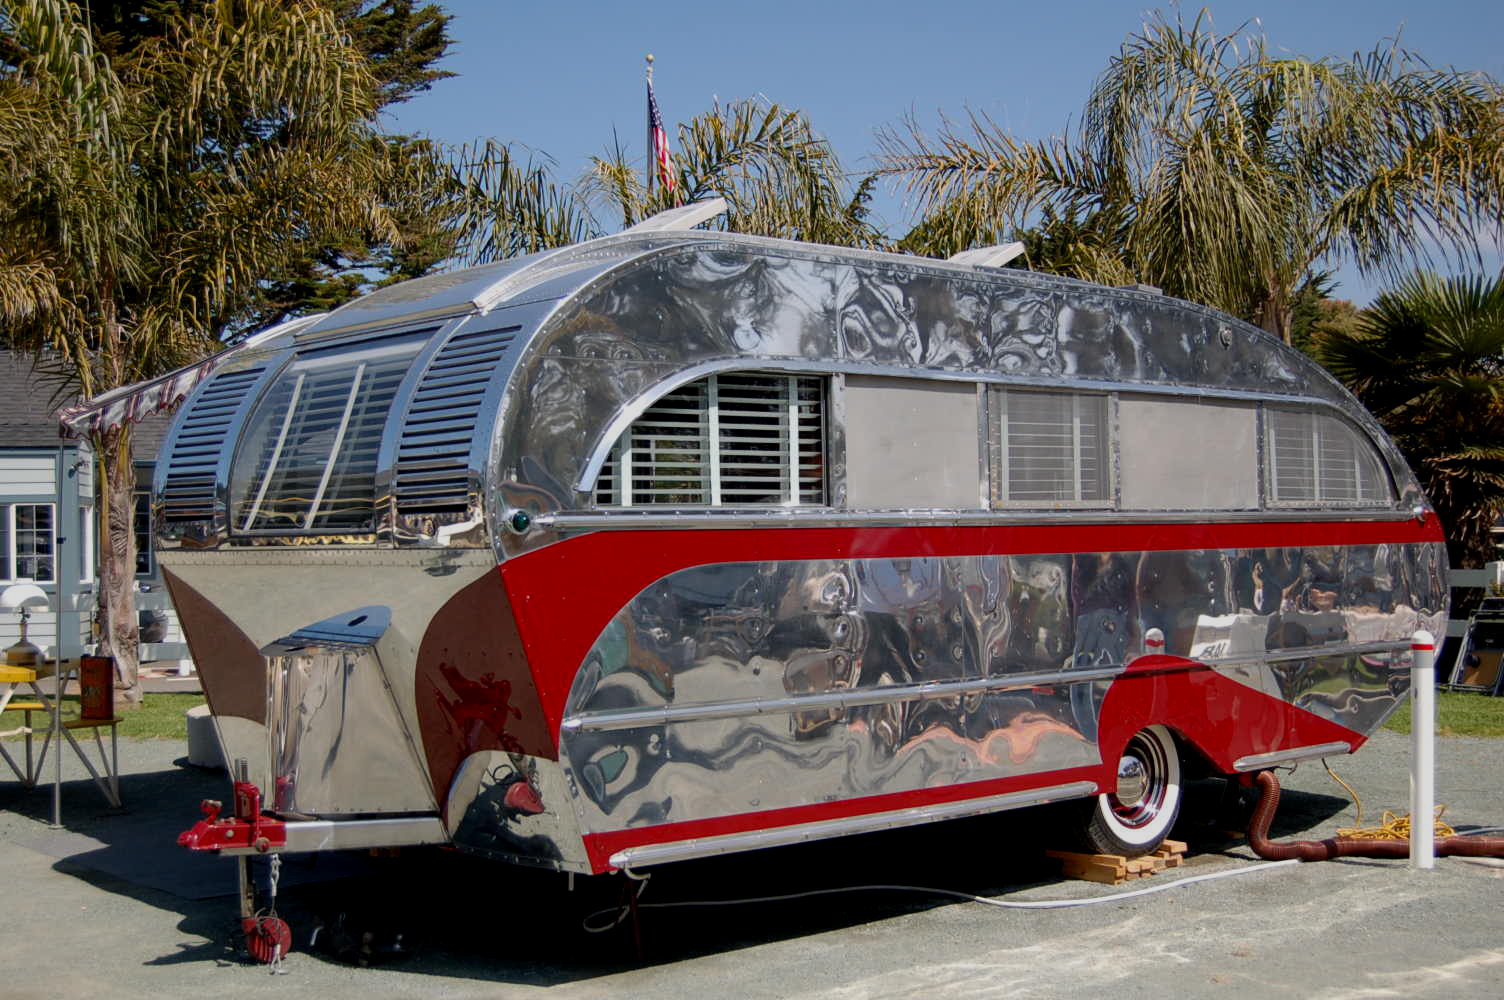 Posted in retro vintage tagged classic cars teardrop caravan vintage - 252 Best Travel Trailer Images On Pinterest Vintage Campers Travel Trailers And Vintage Caravans